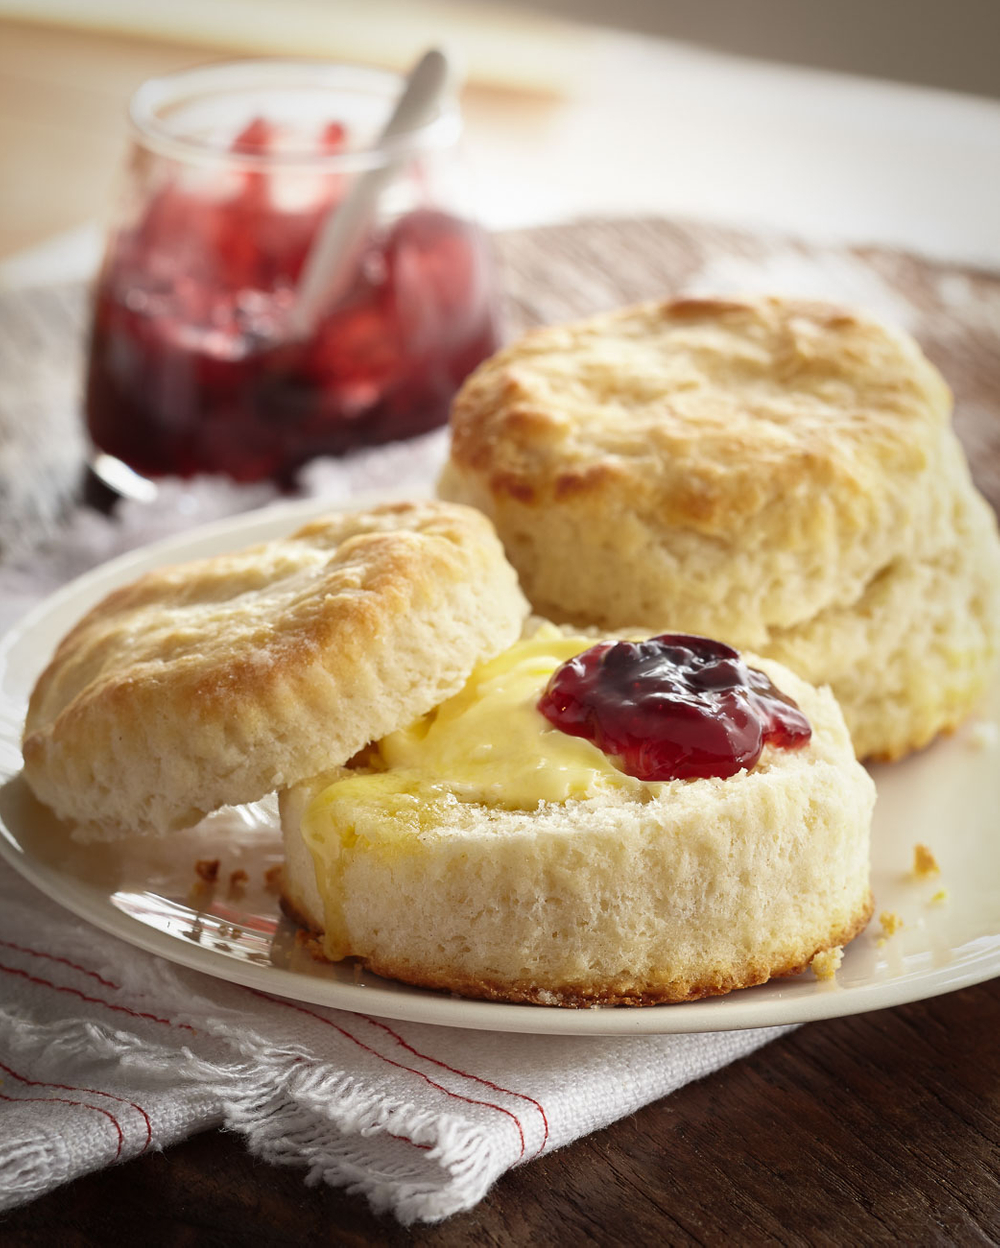 biscuits-and-jam-food-stylist-san-francisco.jpg